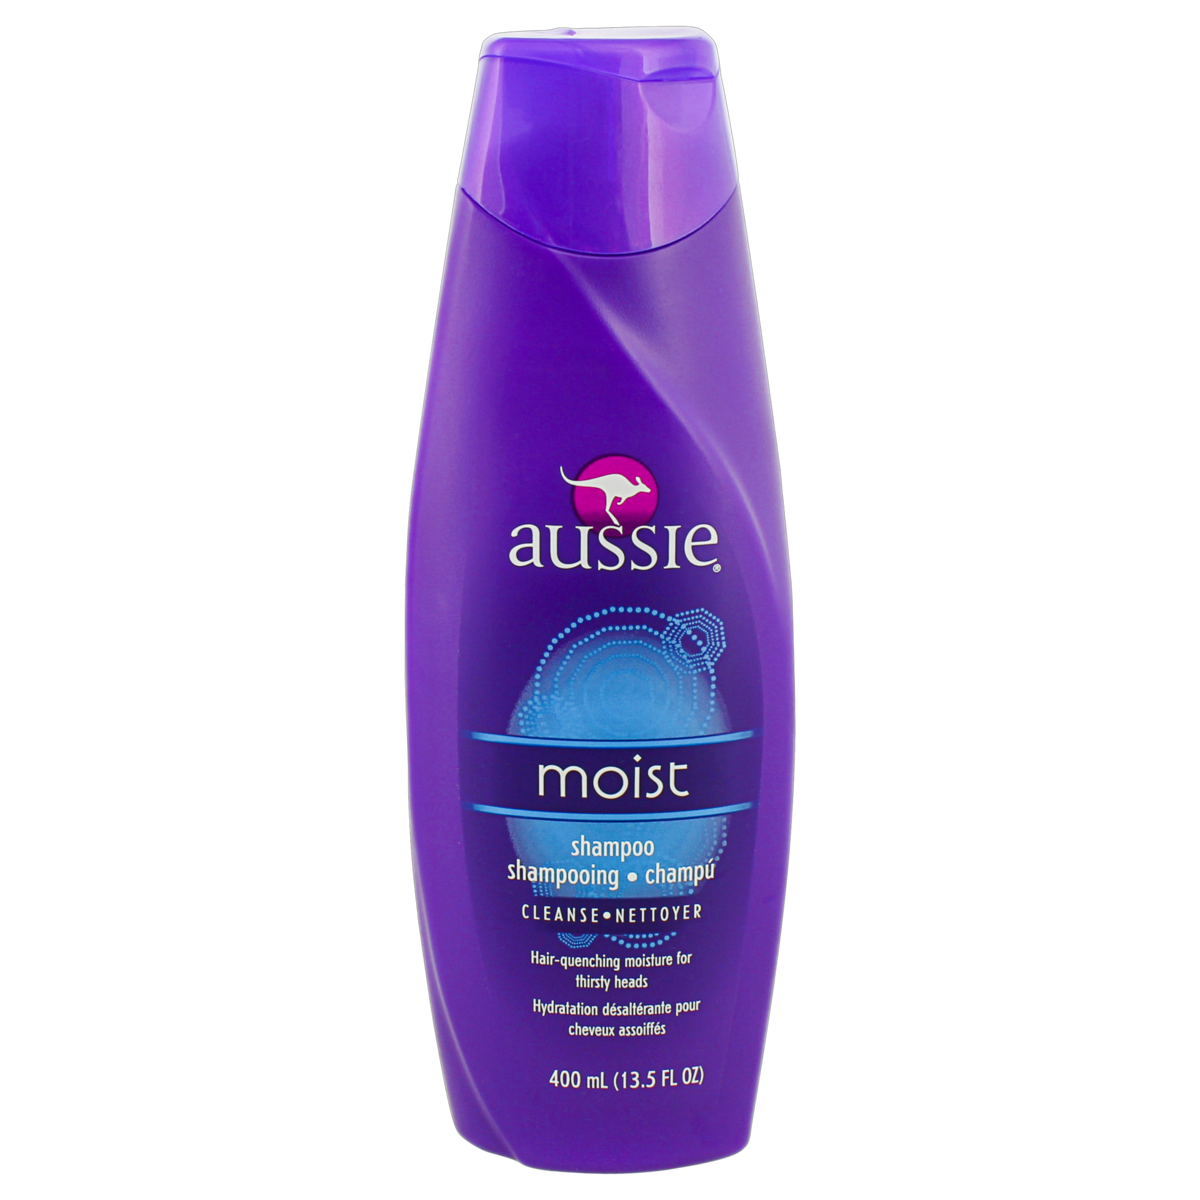 0381519022722 - SHAMPOO MOIST AUSSIE FRASCO 400ML